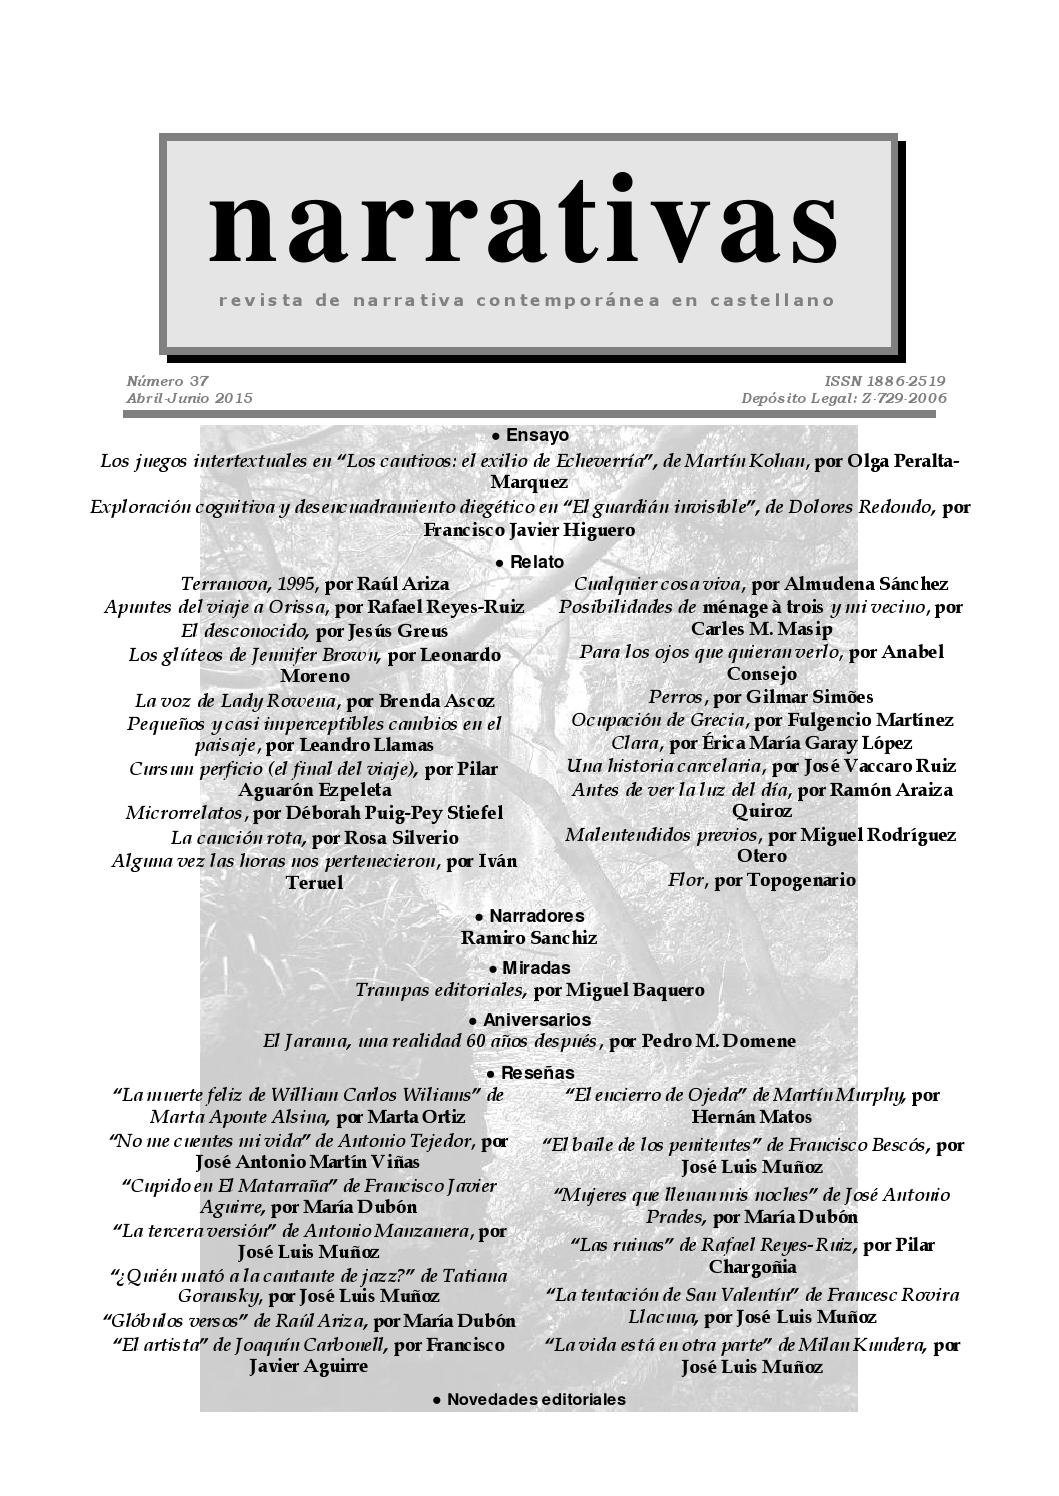 Narrativas nº 37 (abril 2015) by Leandro Llamas Pérez - issuu 9487e04d5488